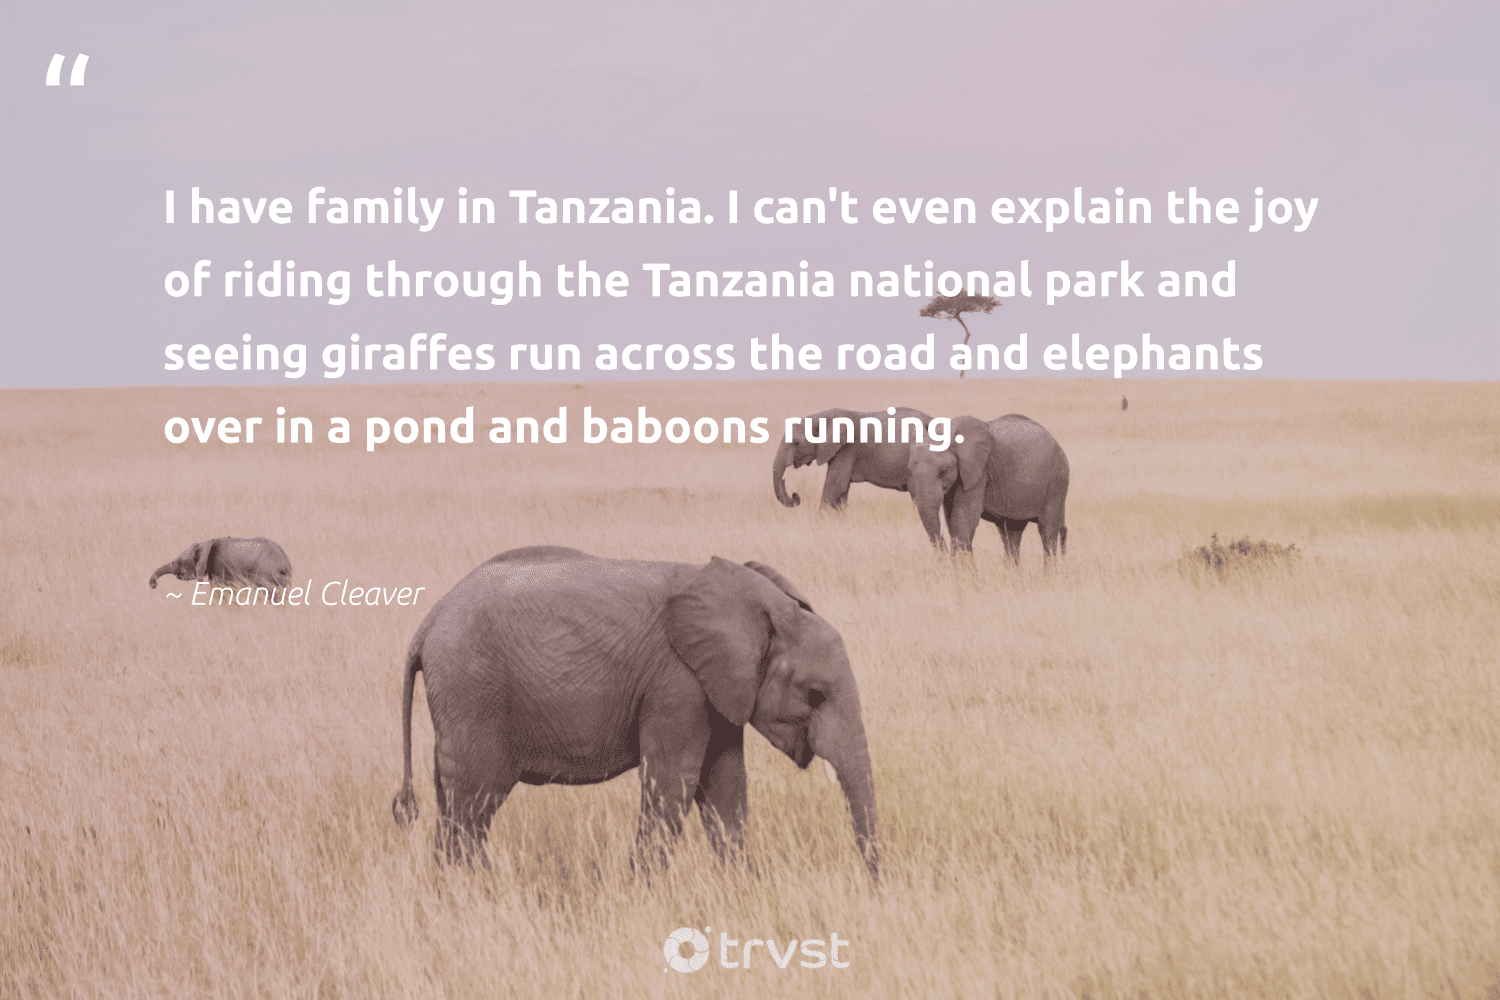 """""""I have family in Tanzania. I can't even explain the joy of riding through the Tanzania national park and seeing giraffes run across the road and elephants over in a pond and baboons running.""""  - Emanuel Cleaver #trvst #quotes #family #elephants #wildgeography #ecoconscious #animals #thinkgreen #savetheelephants #socialchange #wildanimals #dotherightthing"""